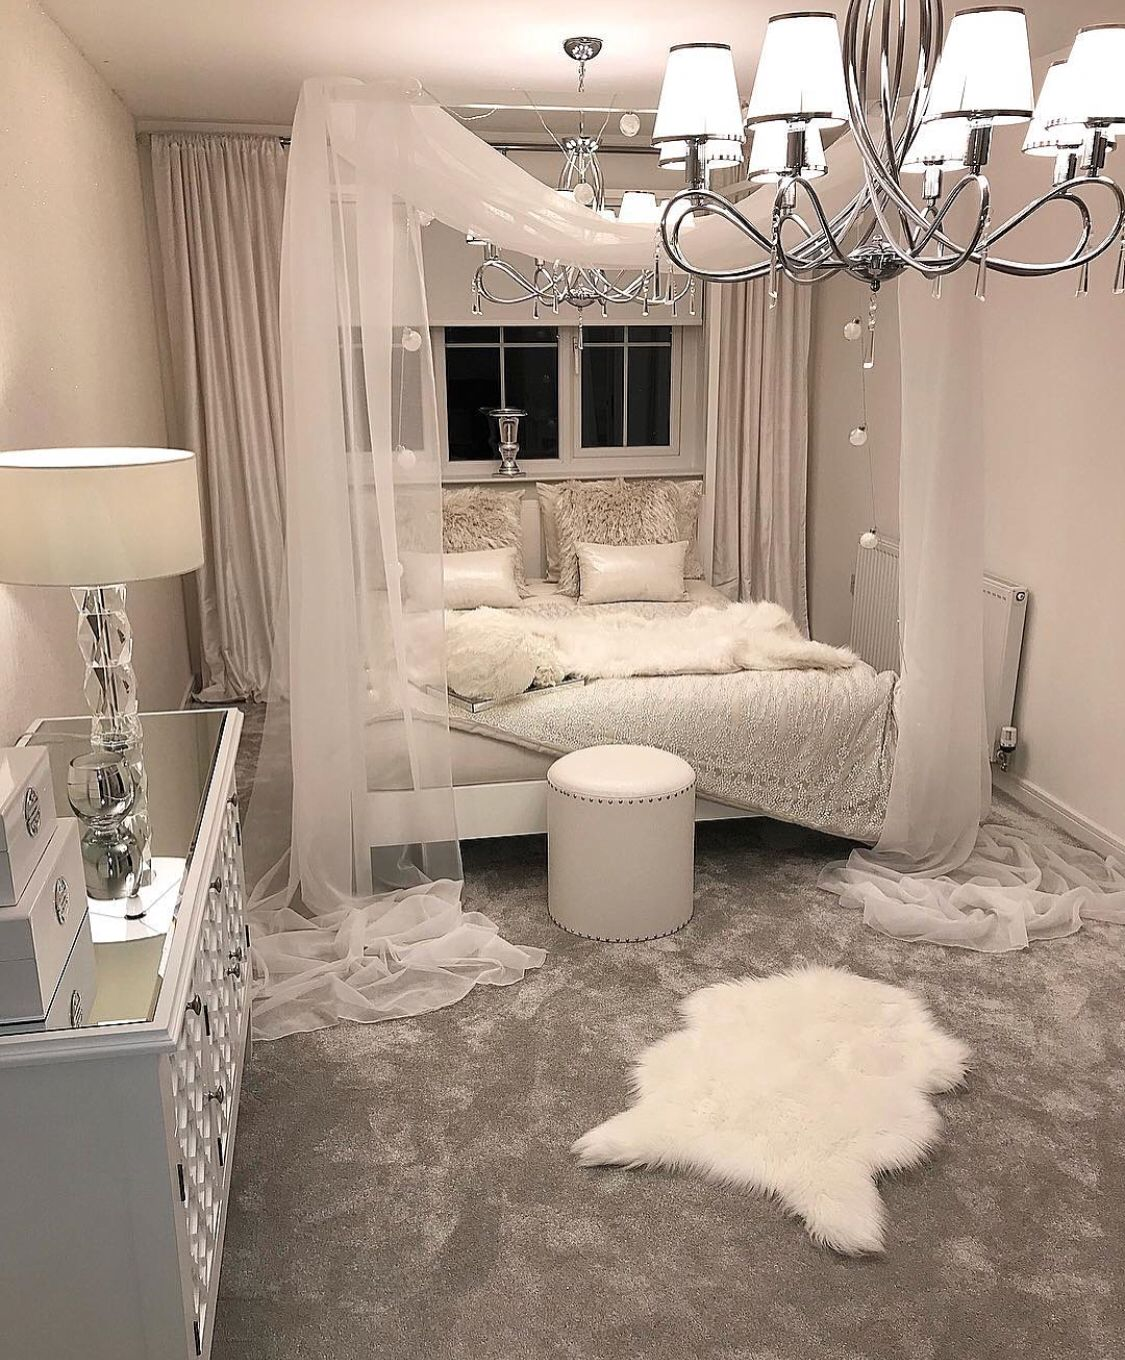 Achromatic Bedroom Space